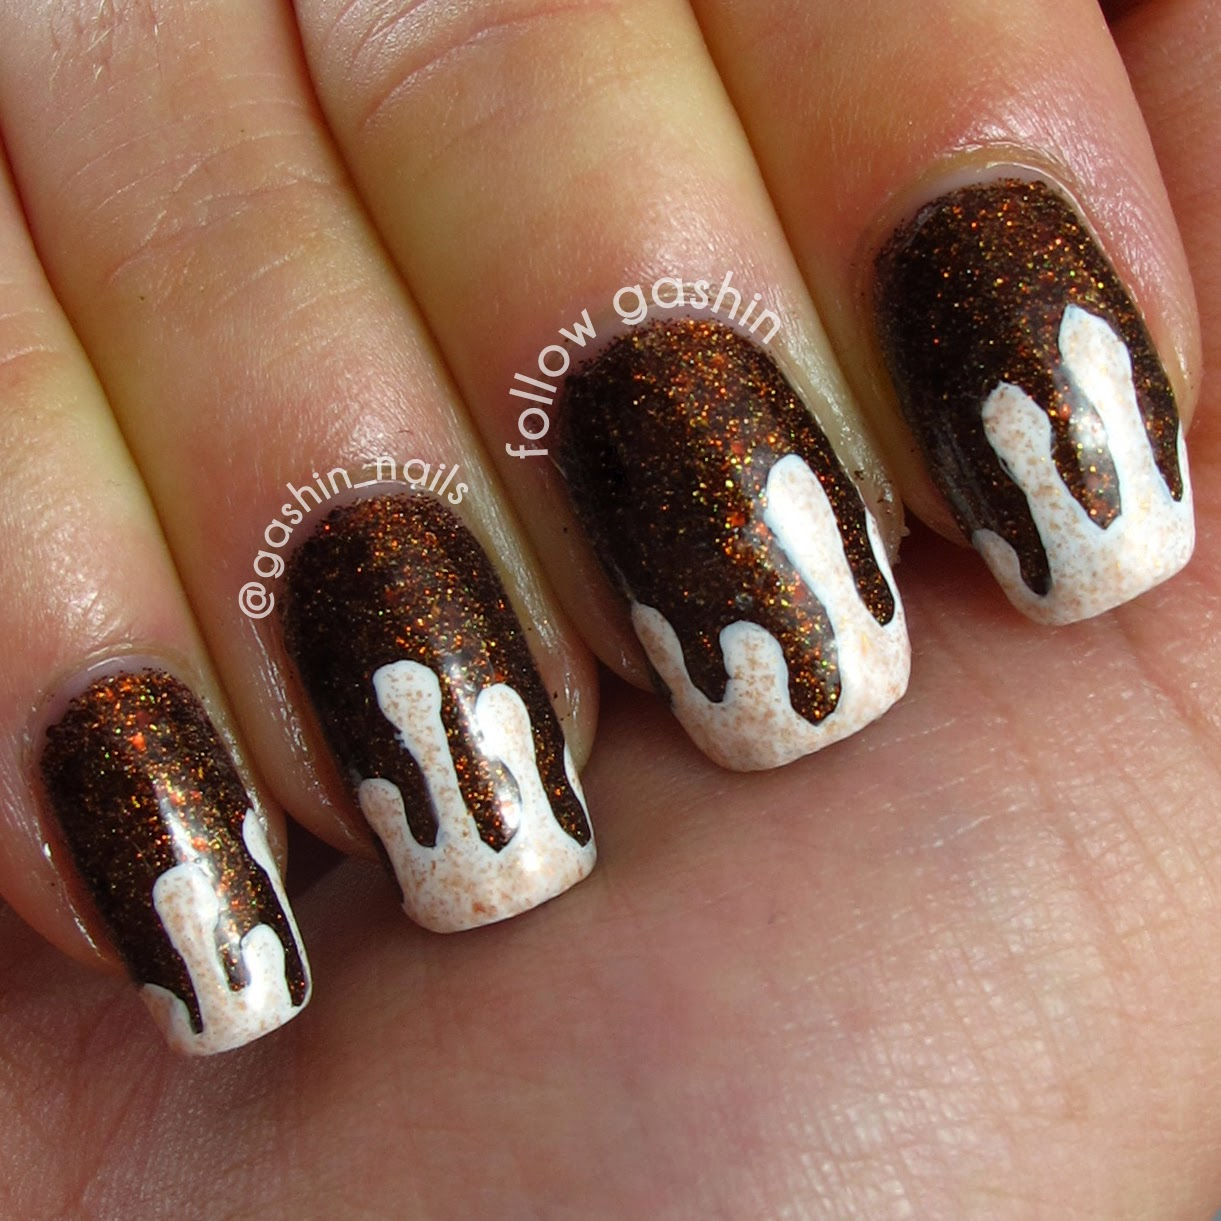 Nail Cake October 2013: Follow Gashin: Spice Cake Drippy Nails